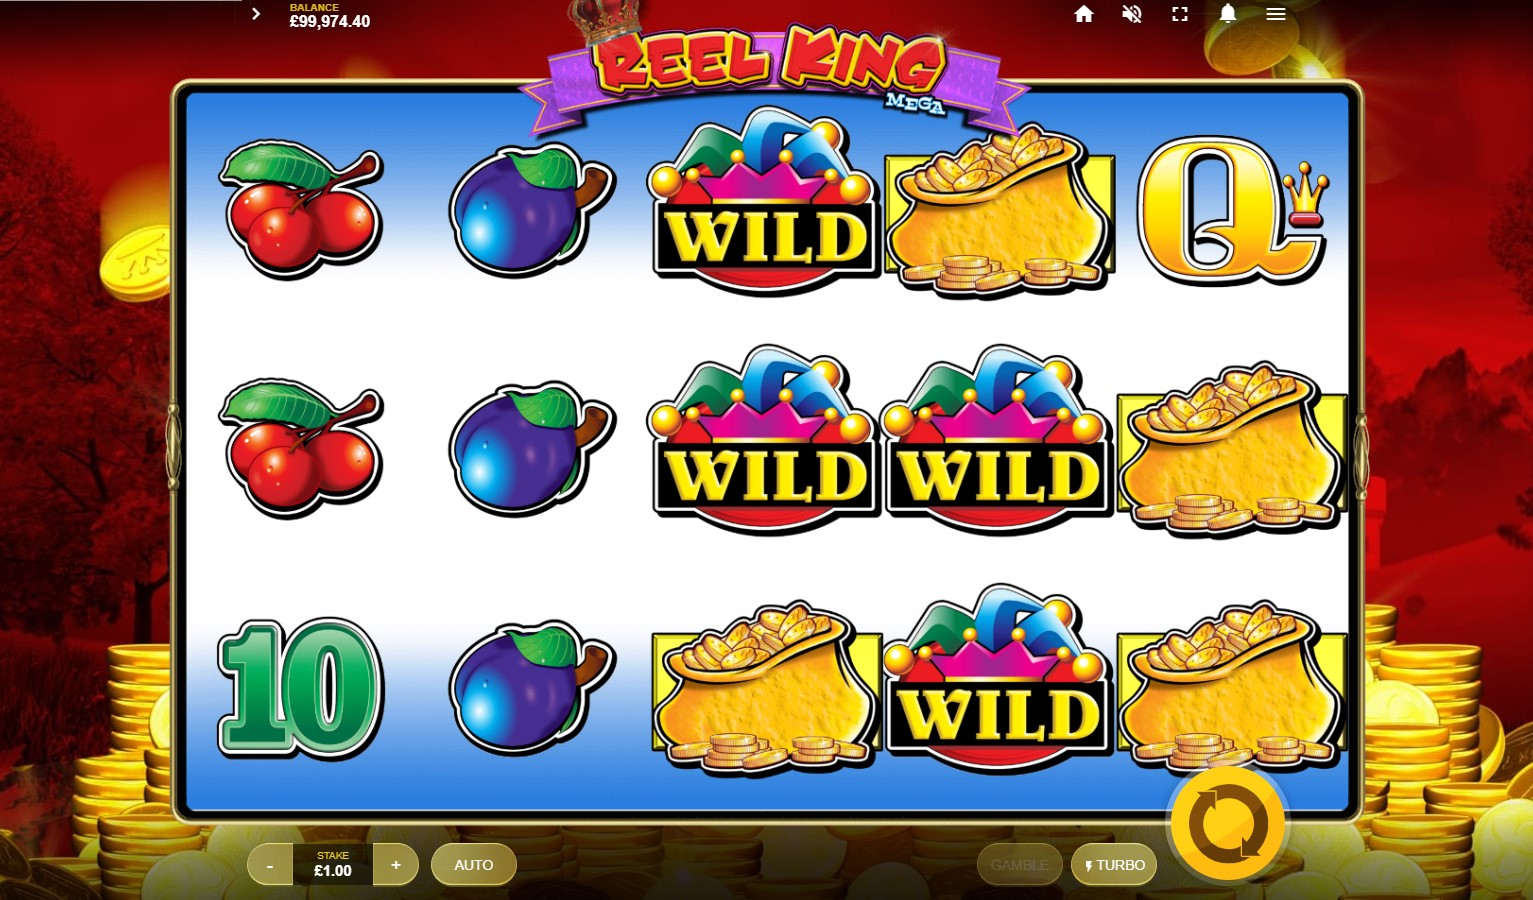 Base game screenshot from Red Tiger's Reel King Mega video slot